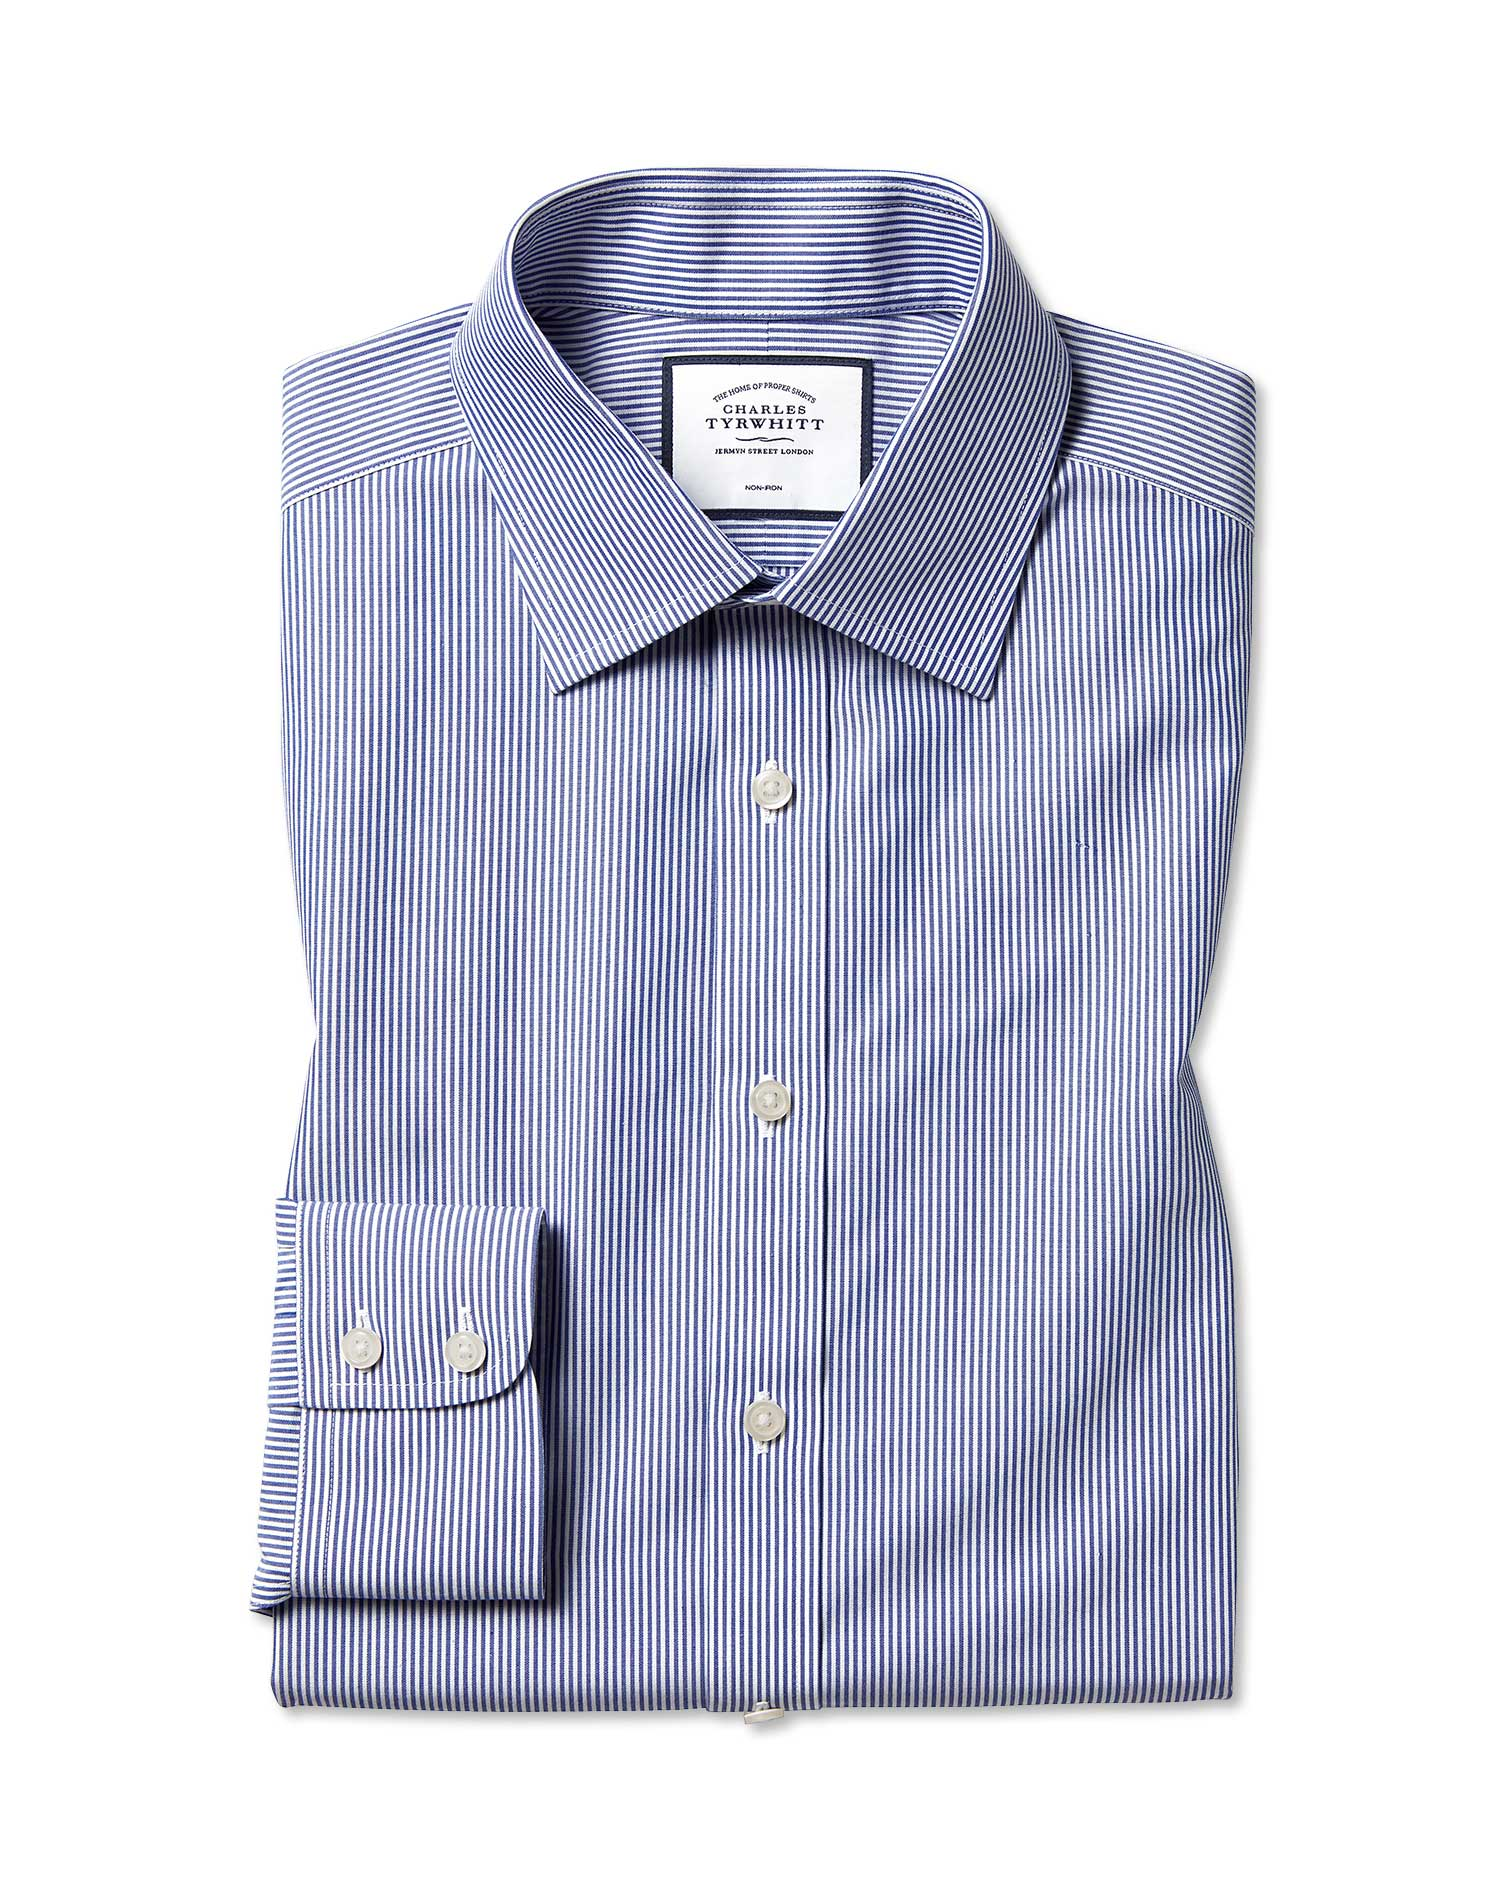 Classic Fit Non-Iron Bengal Stripe Navy Blue Cotton Formal Shirt Single Cuff Size 16/36 by Charles T